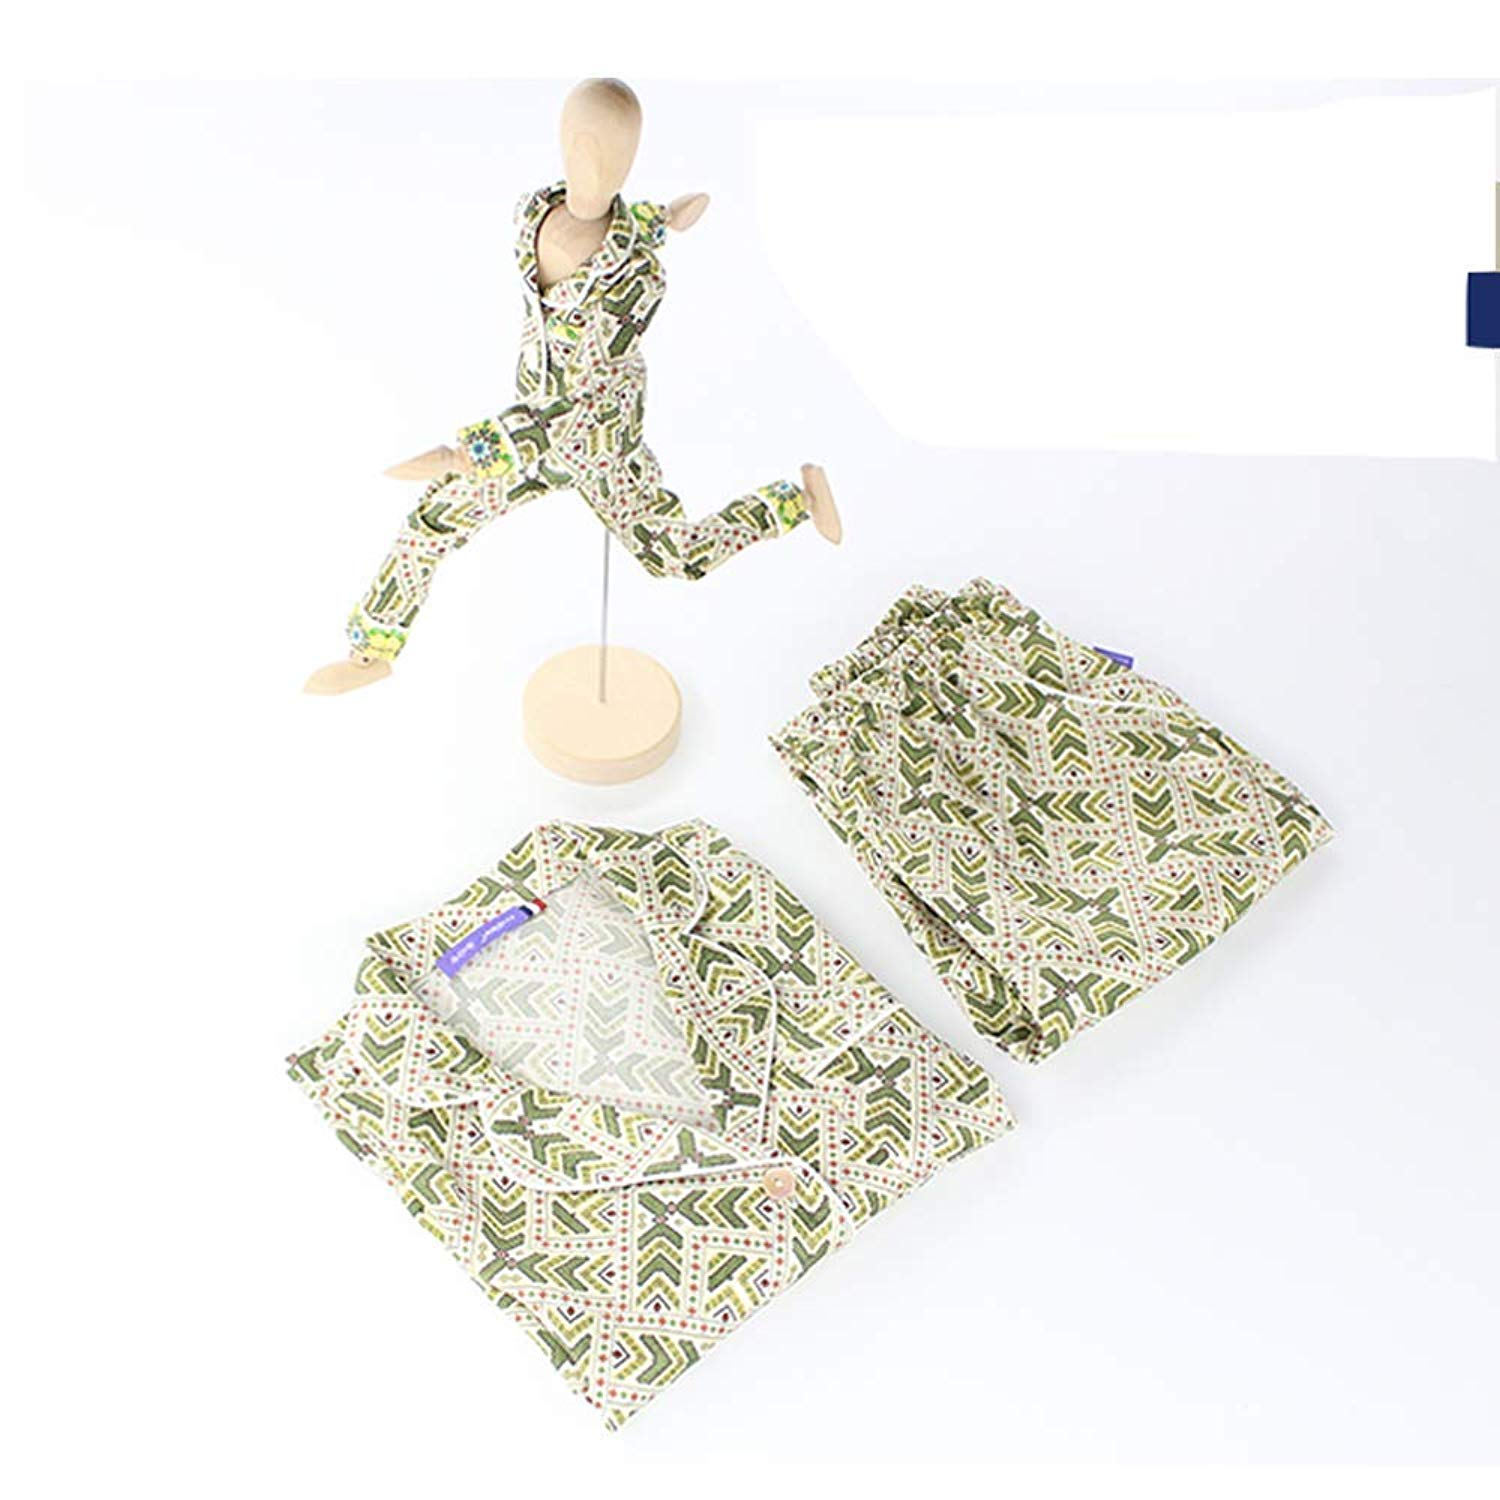 fc339fa8f8 Get Quotations · Printed Silk Children s Pajamas Set Geometry Silk Baby  Home Service Gift Box Silk Children s Pajamas